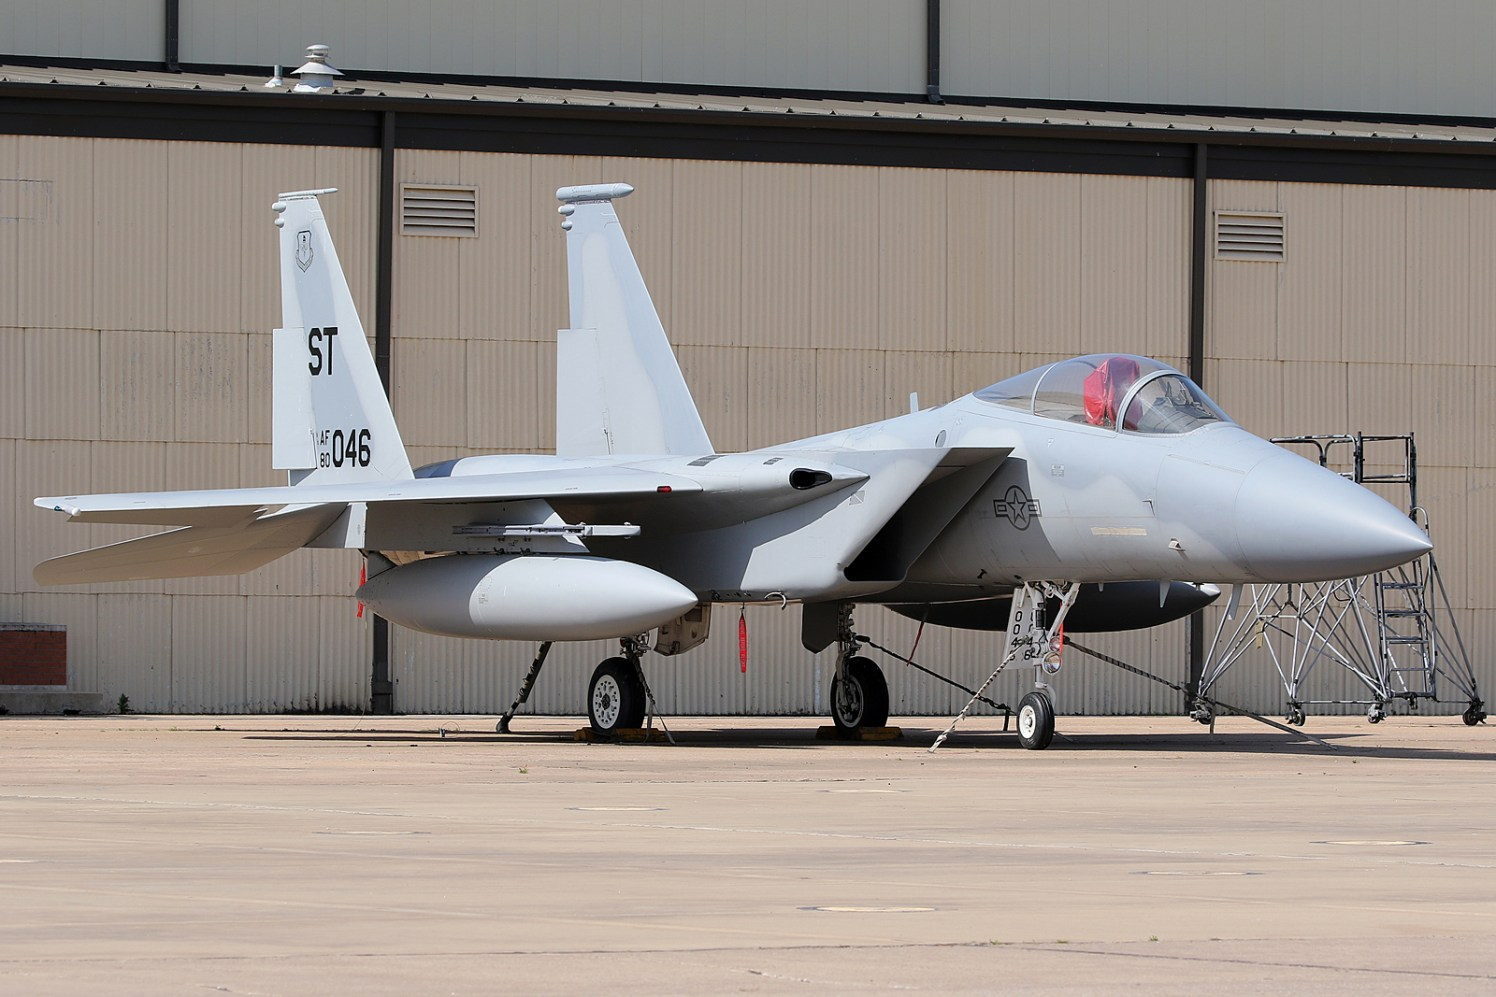 ©Mark Forest - F-15C Eagle 80-0046 - US Air Force Air Education and Training Command